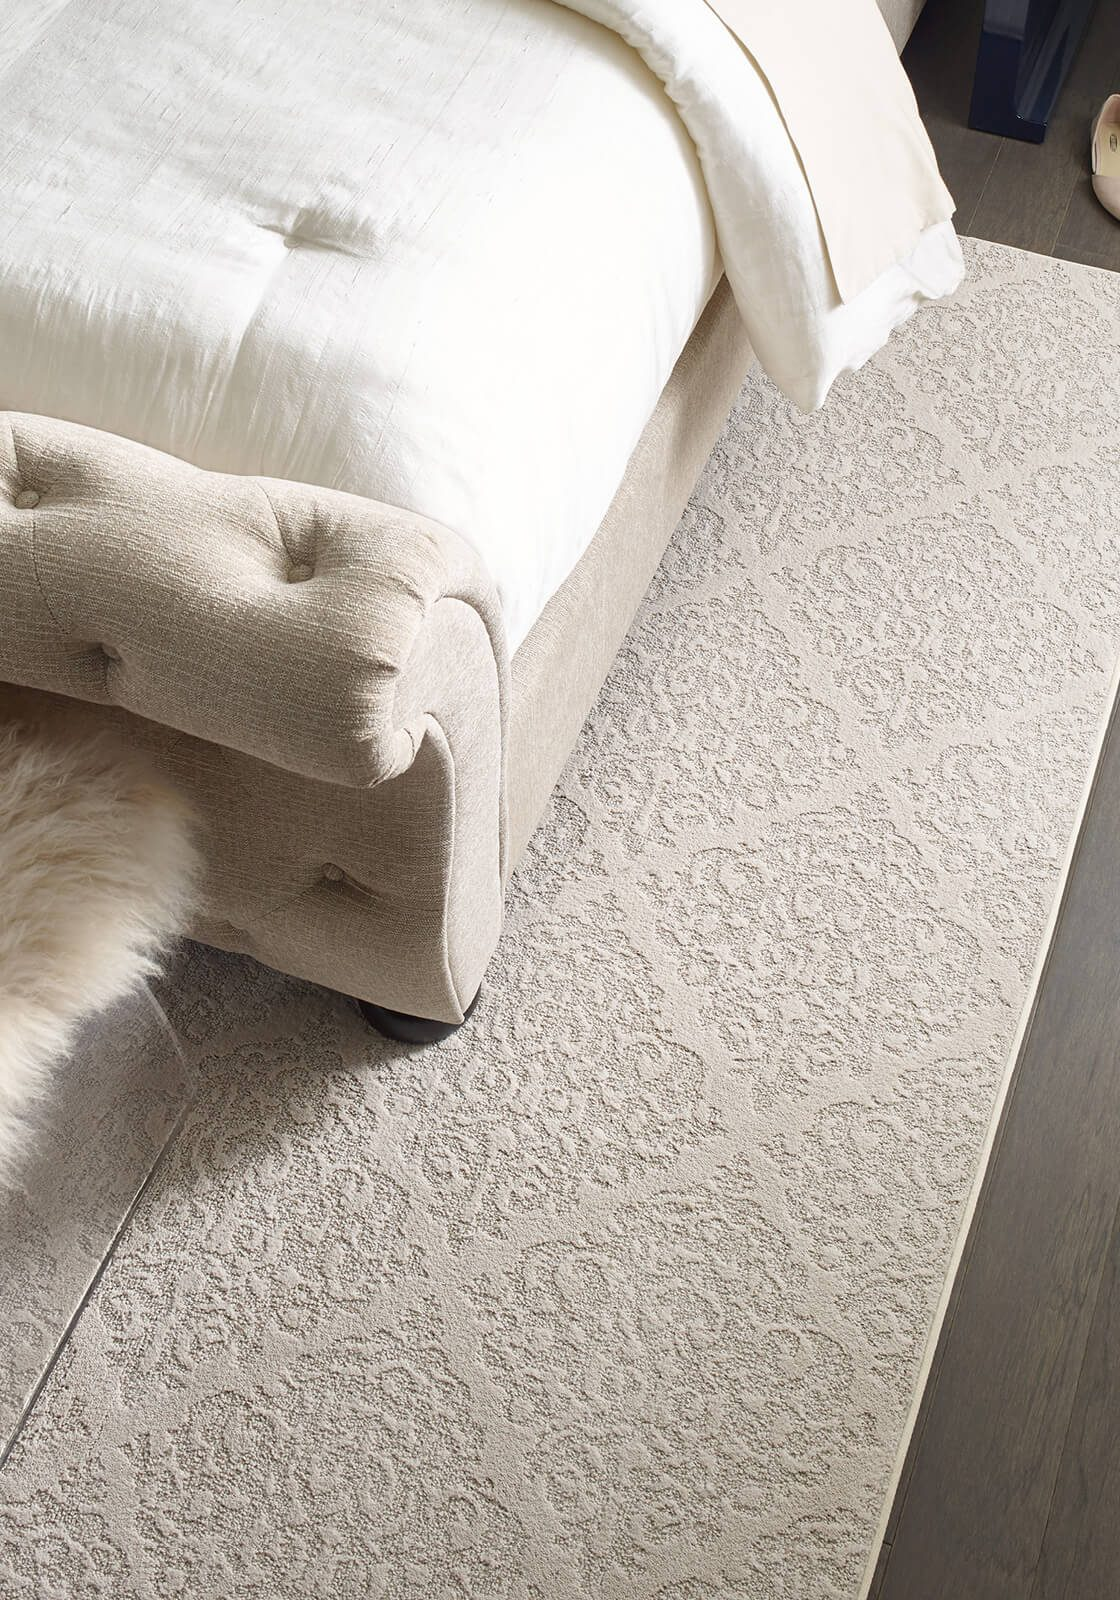 Northington Smooth-2W747-5054-Greystone-CCS73-Chateau Fare-00800-Urban Glamour Bedroom-Rug-Detail-V_1600x1600